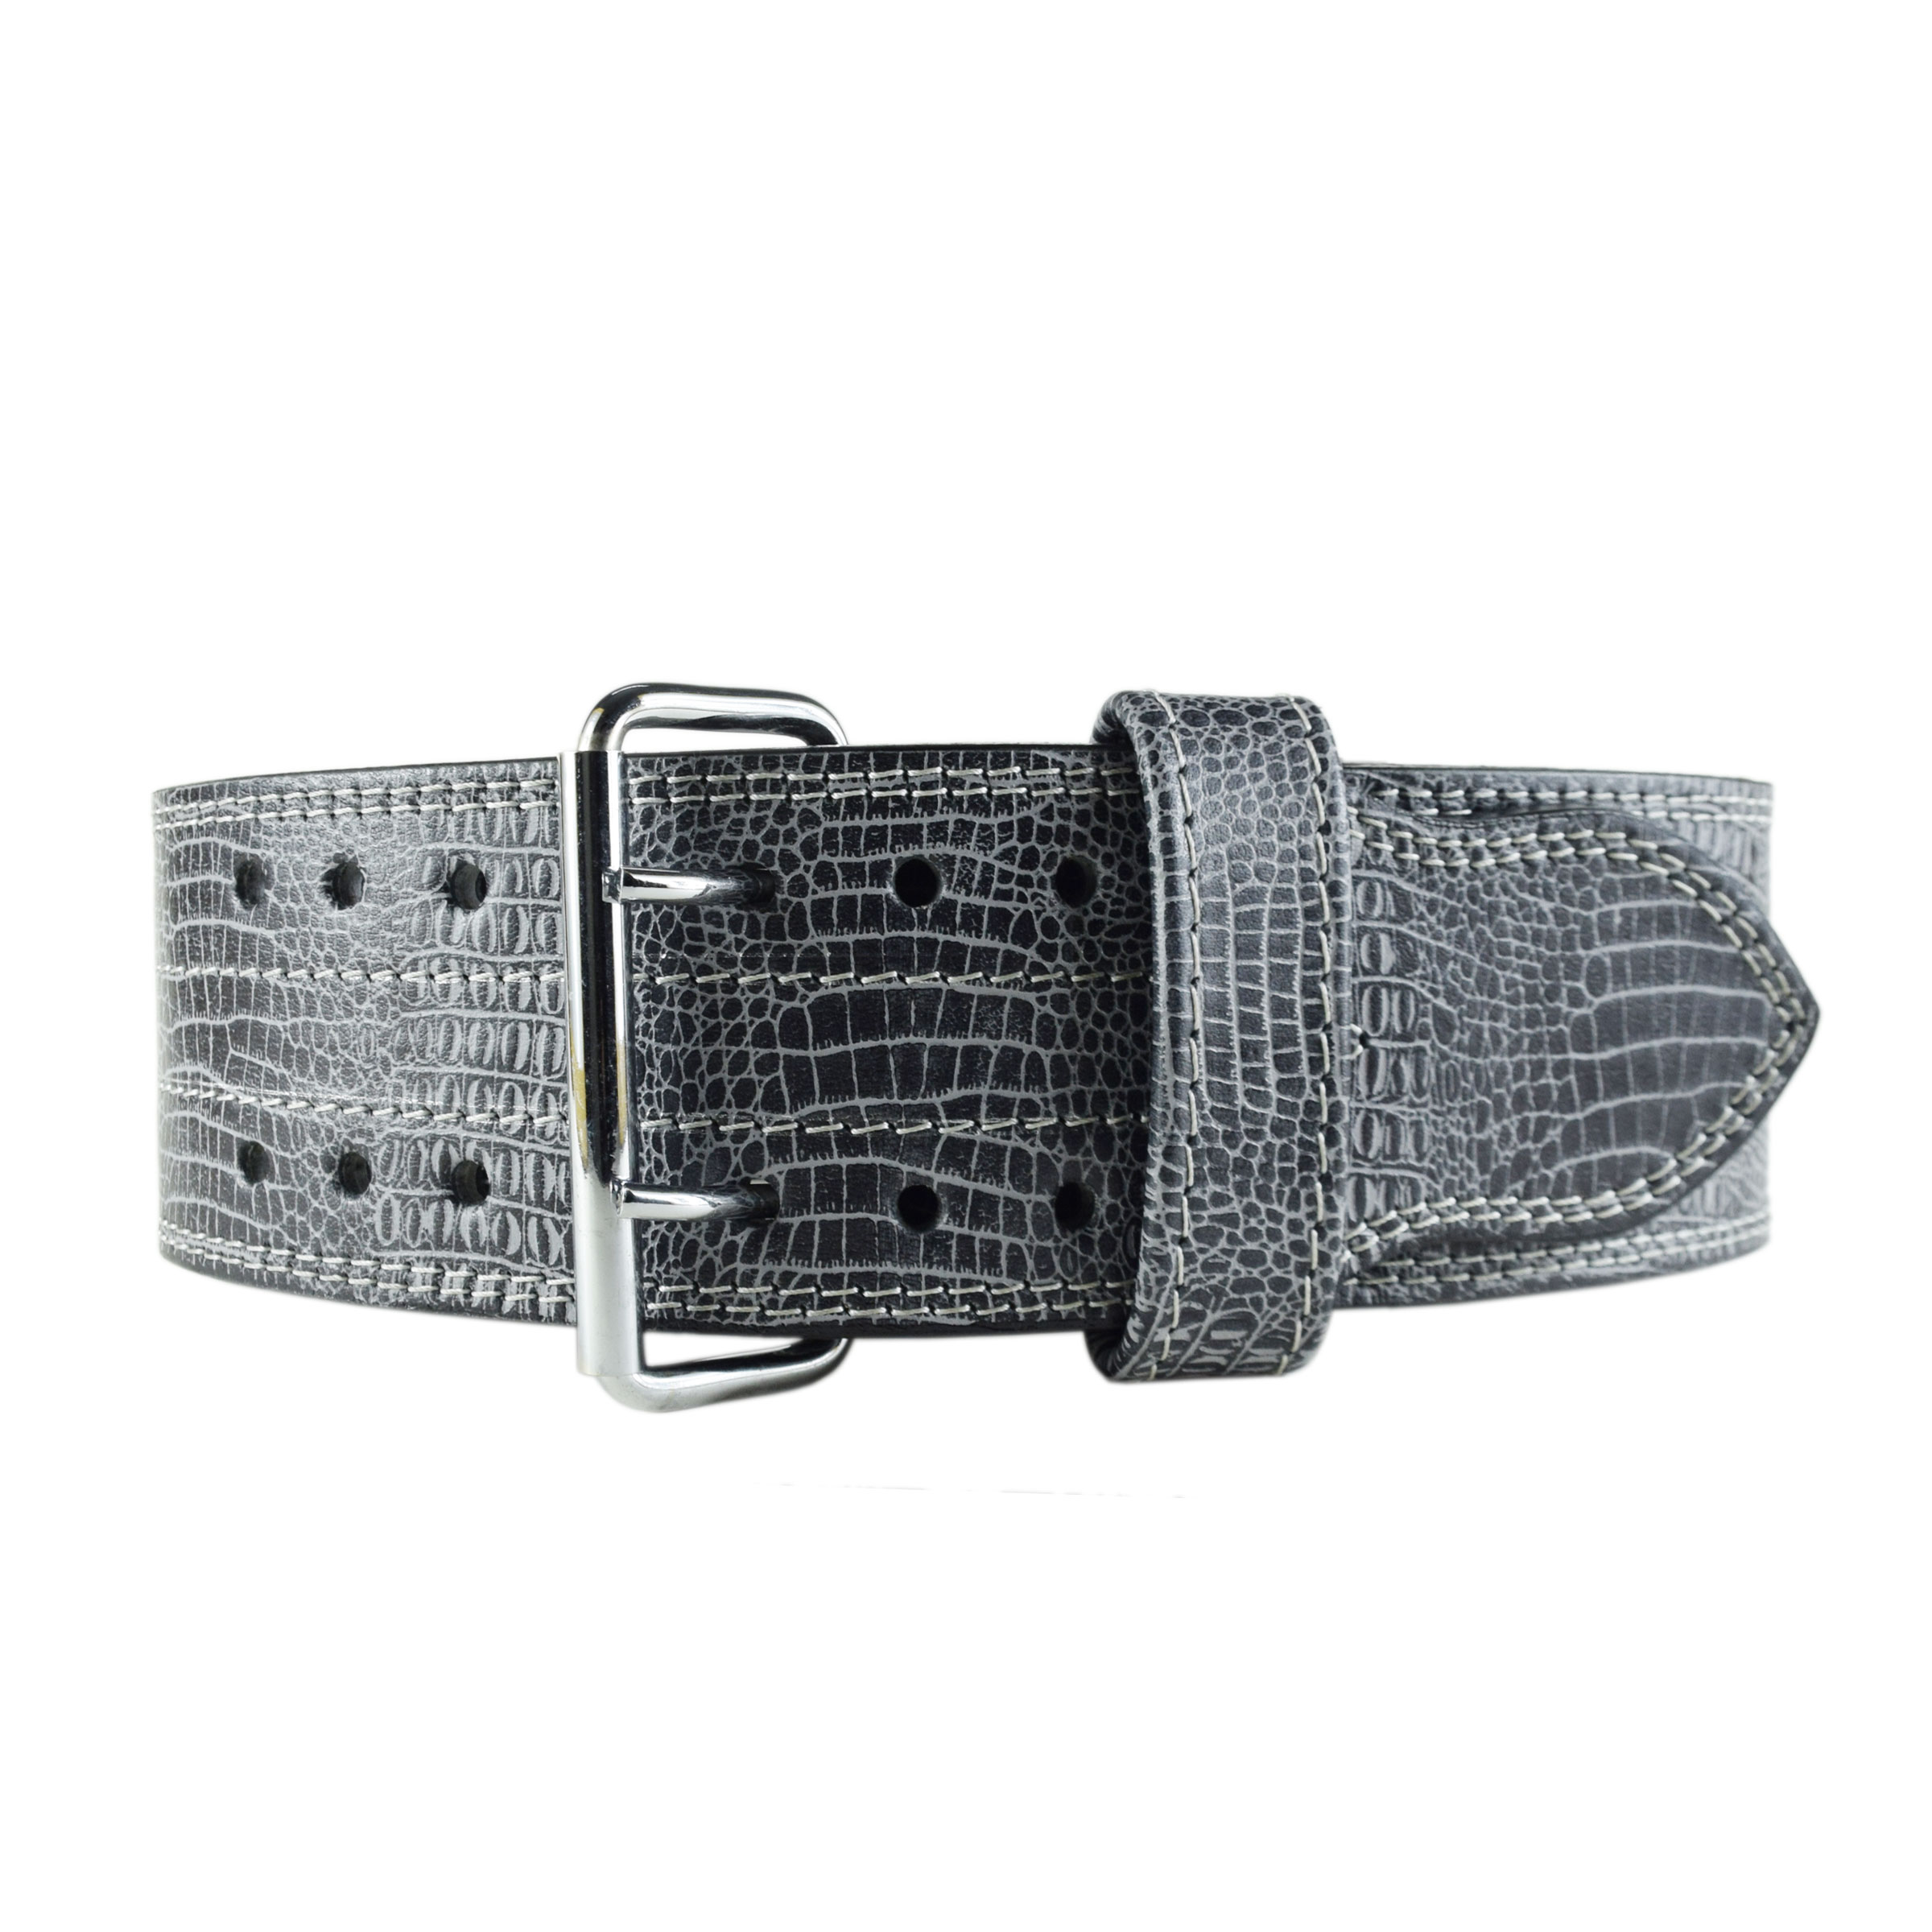 GREY & BLACK WEIGHTLIFTING BELT